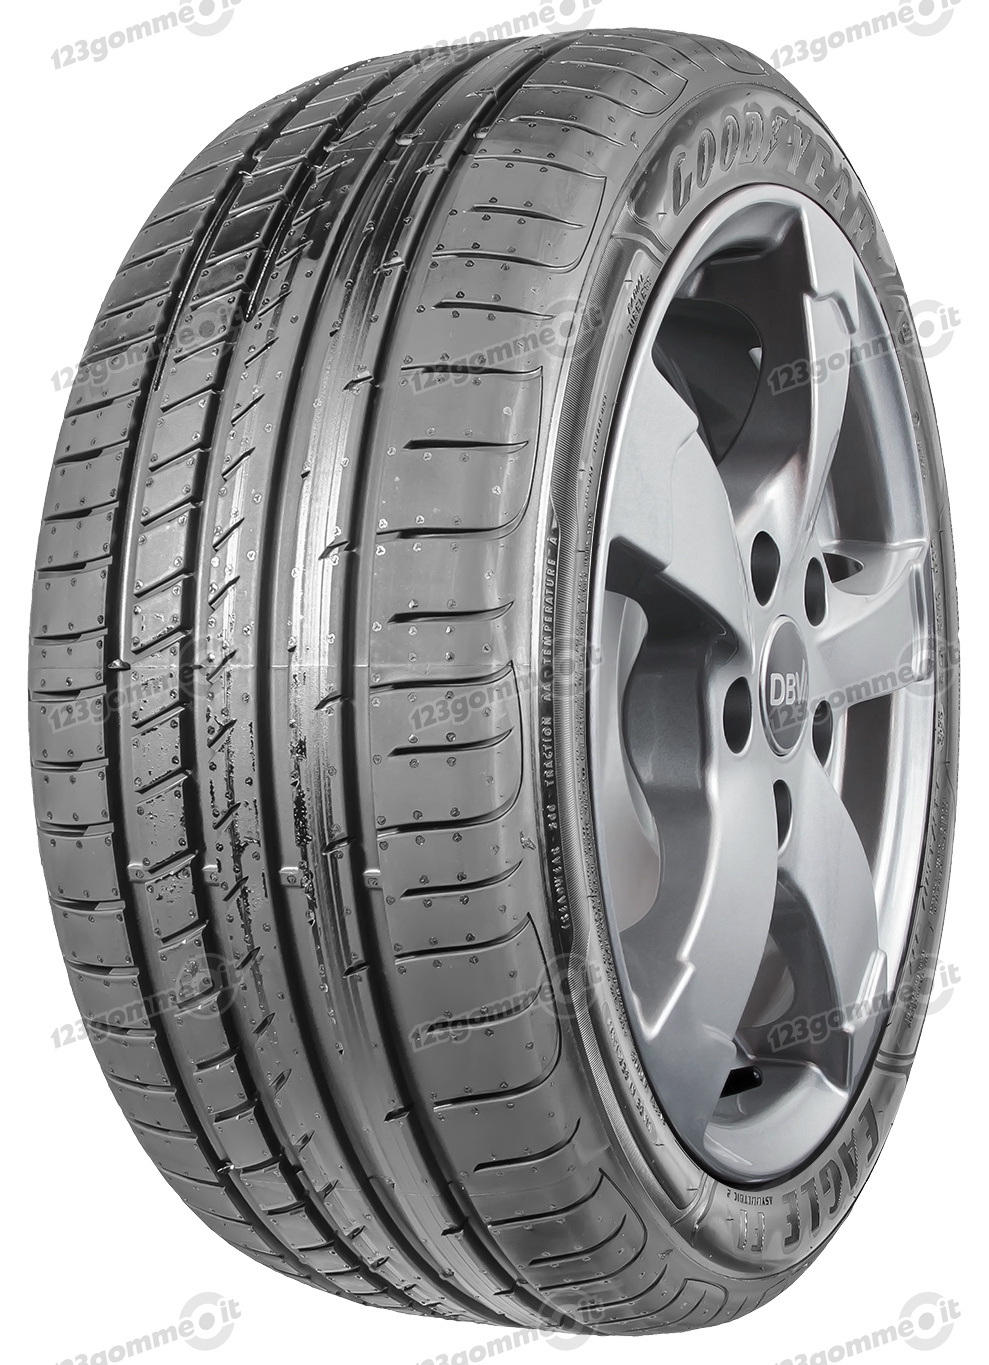 215/45 R18 93Y Eagle F1 Asymmetric 2 XL  Eagle F1 Asymmetric 2 XL